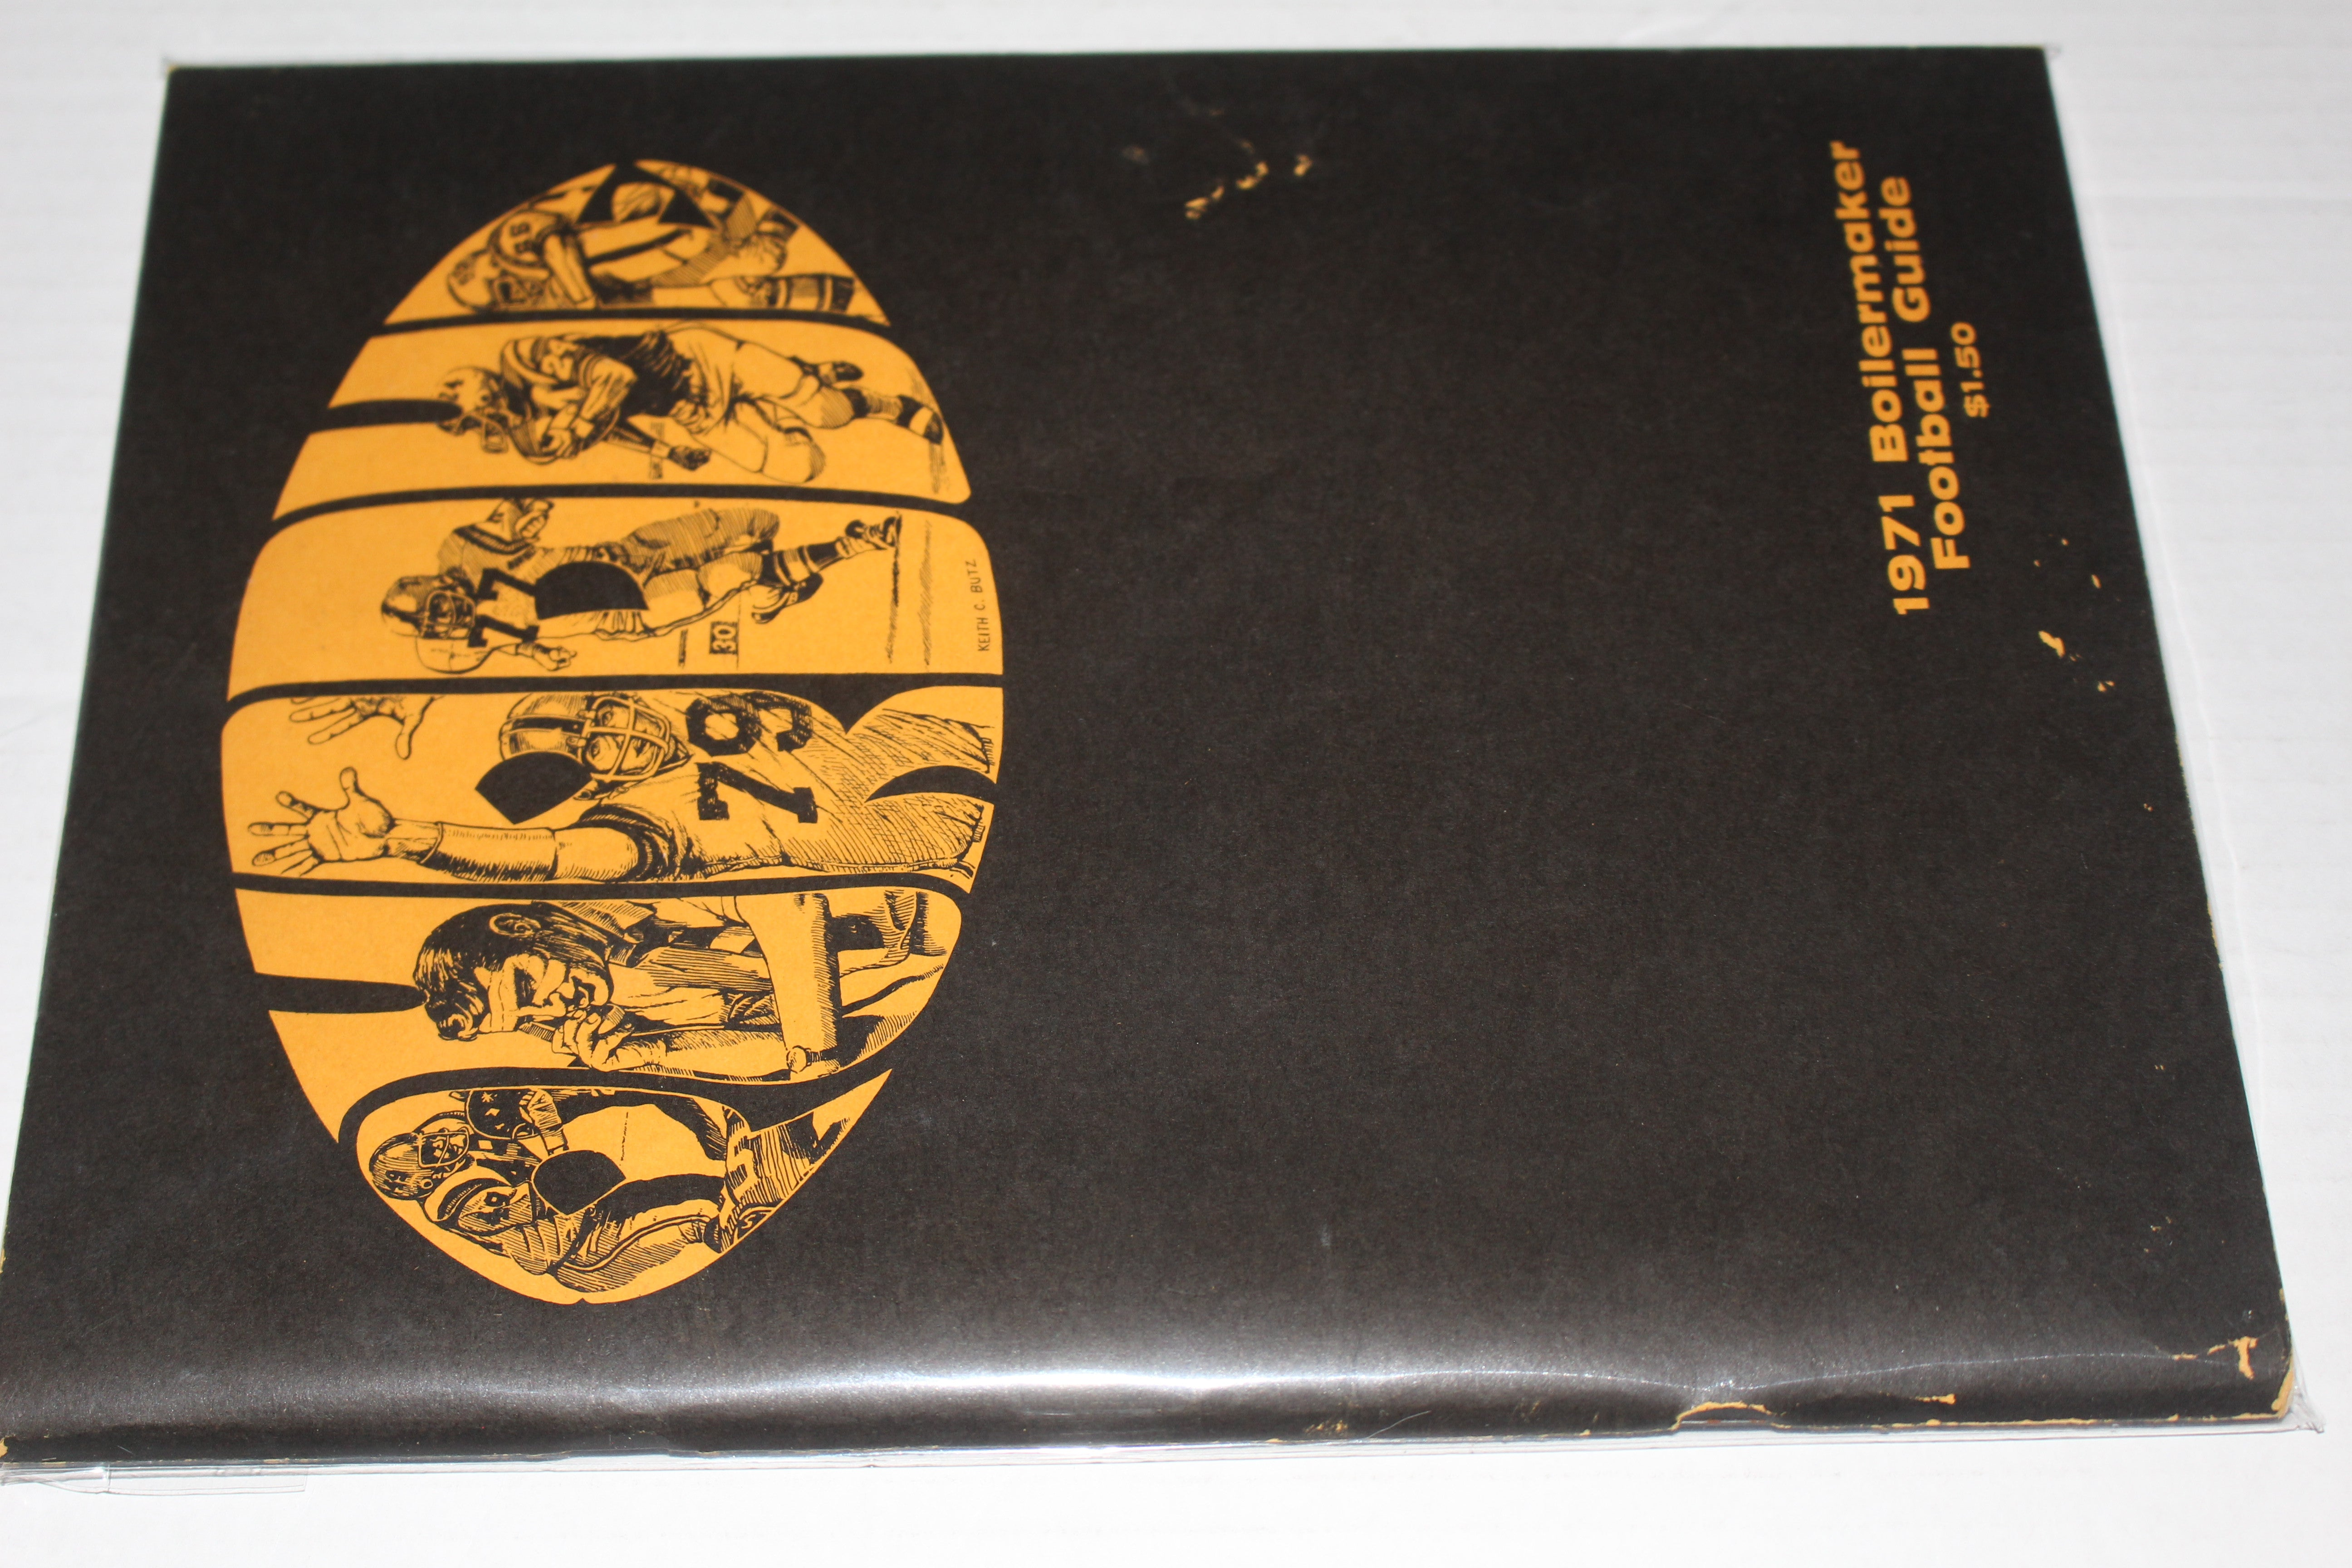 1971 Purdue University Boilermaker Football Guide - Vintage Indy Sports